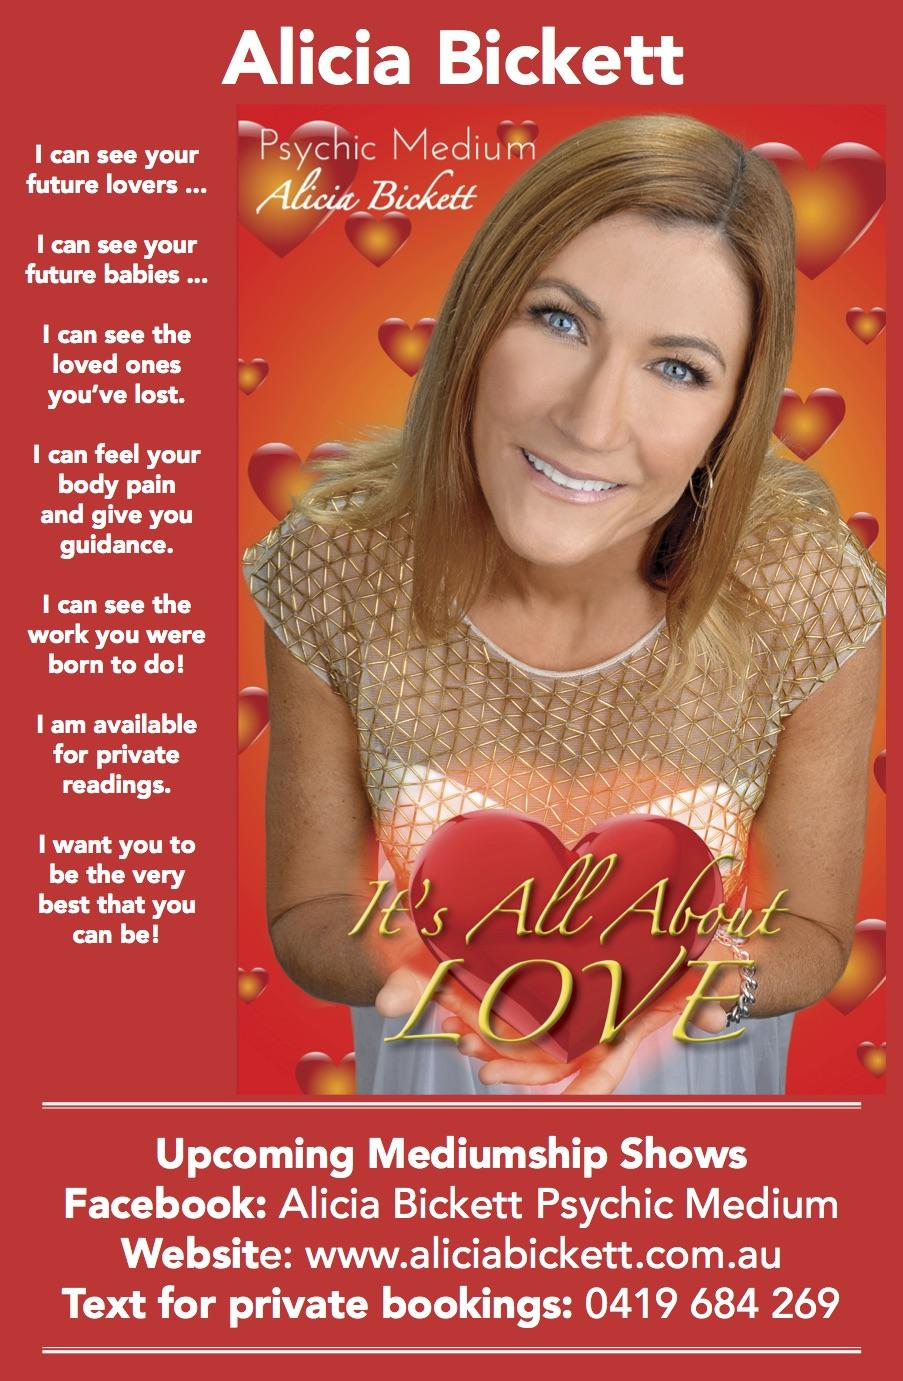 Let's talk with your loved ones in Spirit! Alicia Bickett Psychic Medium Event - Cootamundra Show - Cootamundra Ex-Servicemens Club.